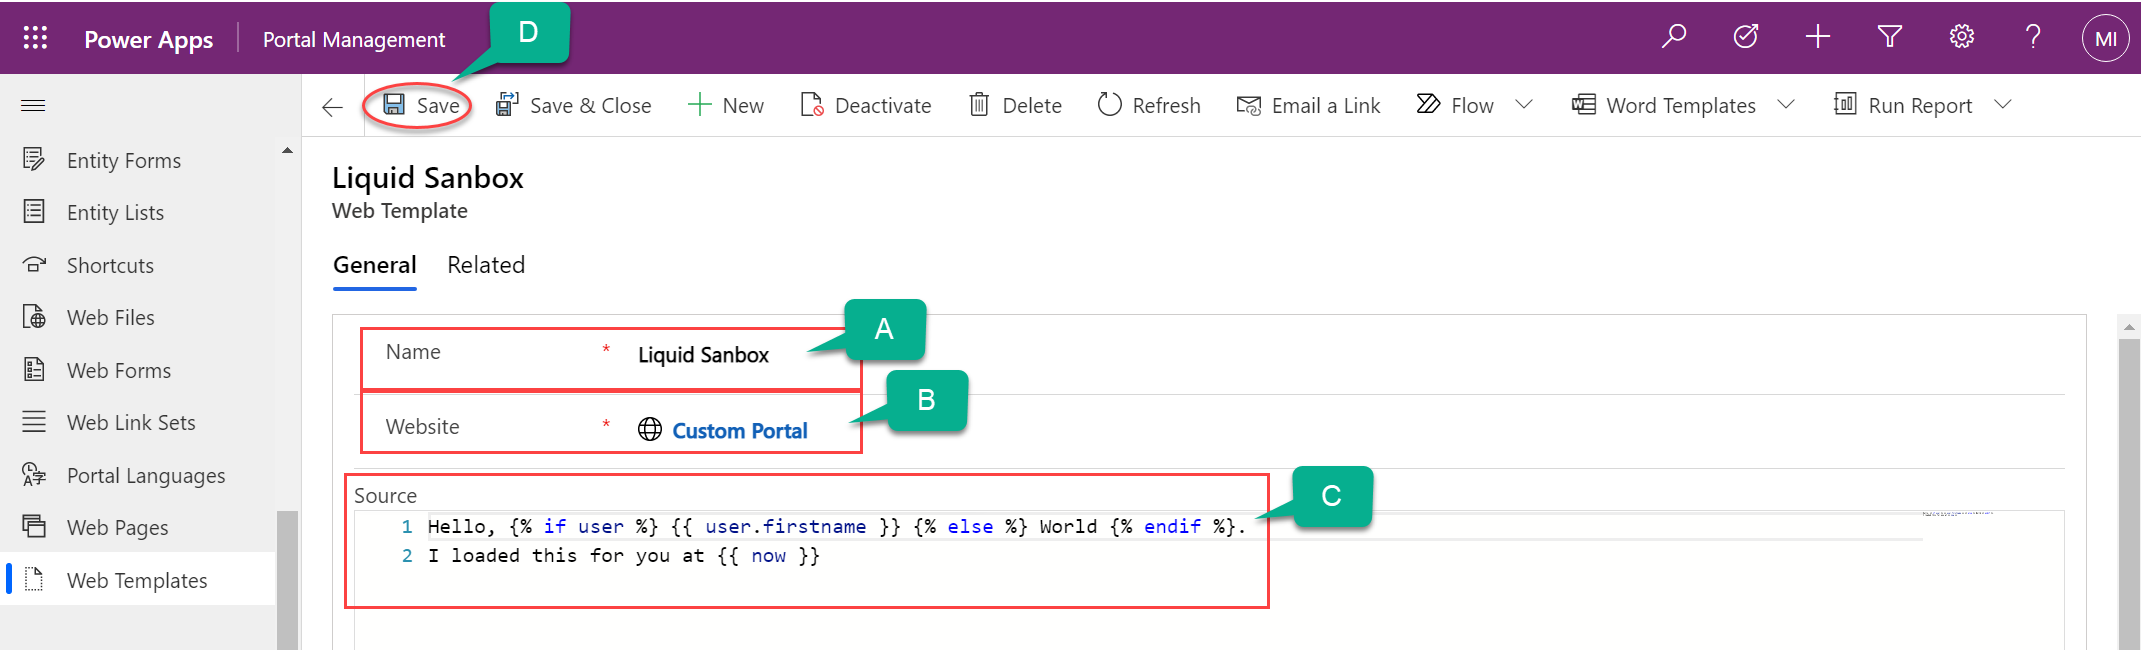 Screenshot creating a Web Template in the Portal Management app